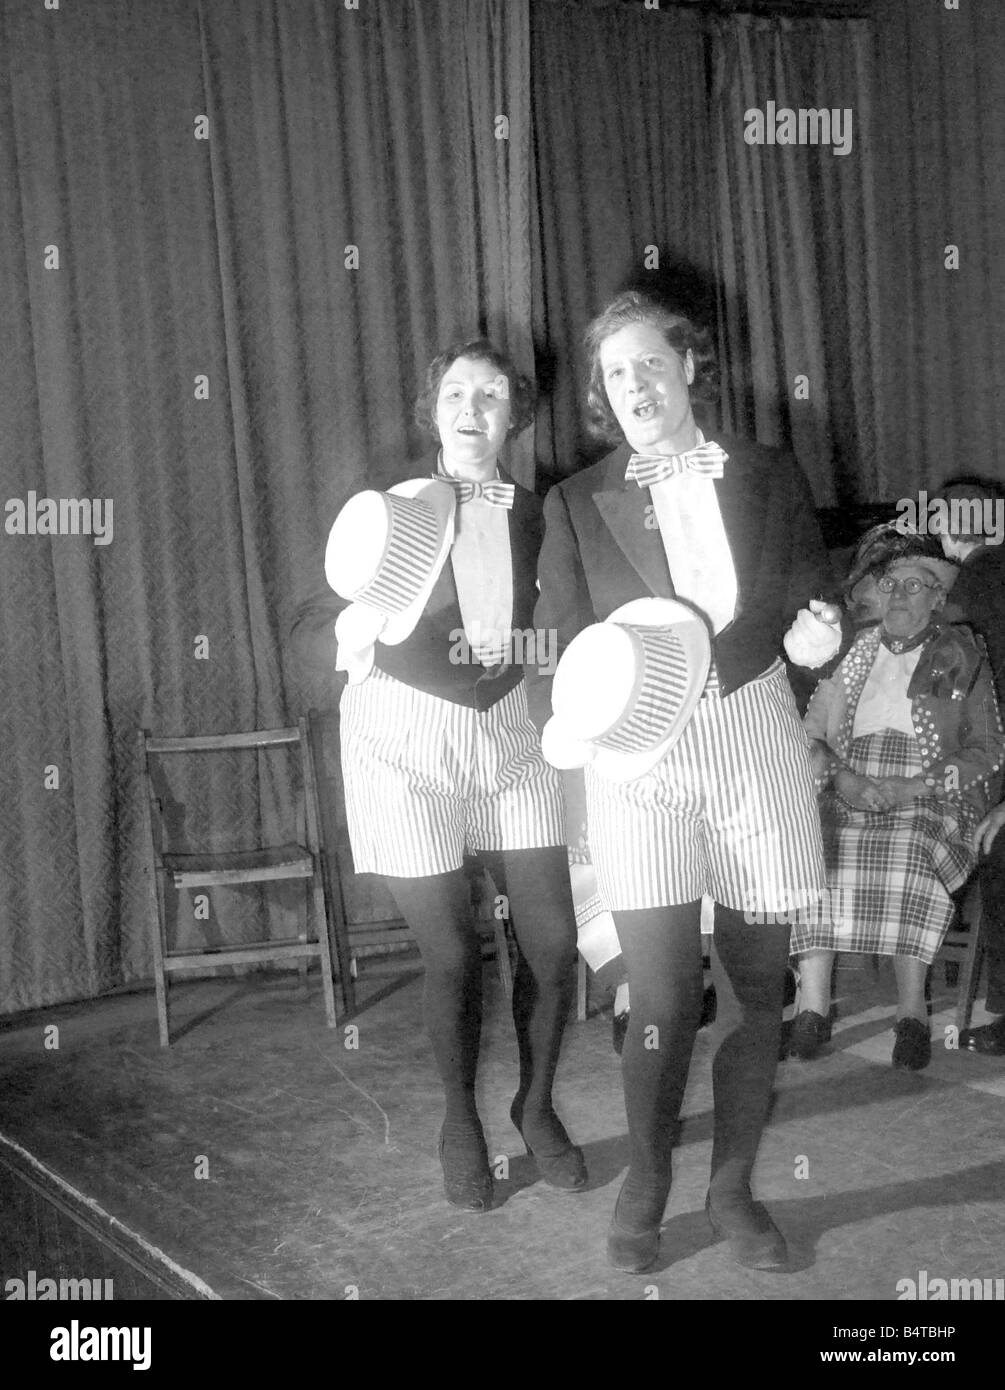 Two ladies performing on stage during a pearly kings and queens concert party - Stock Image